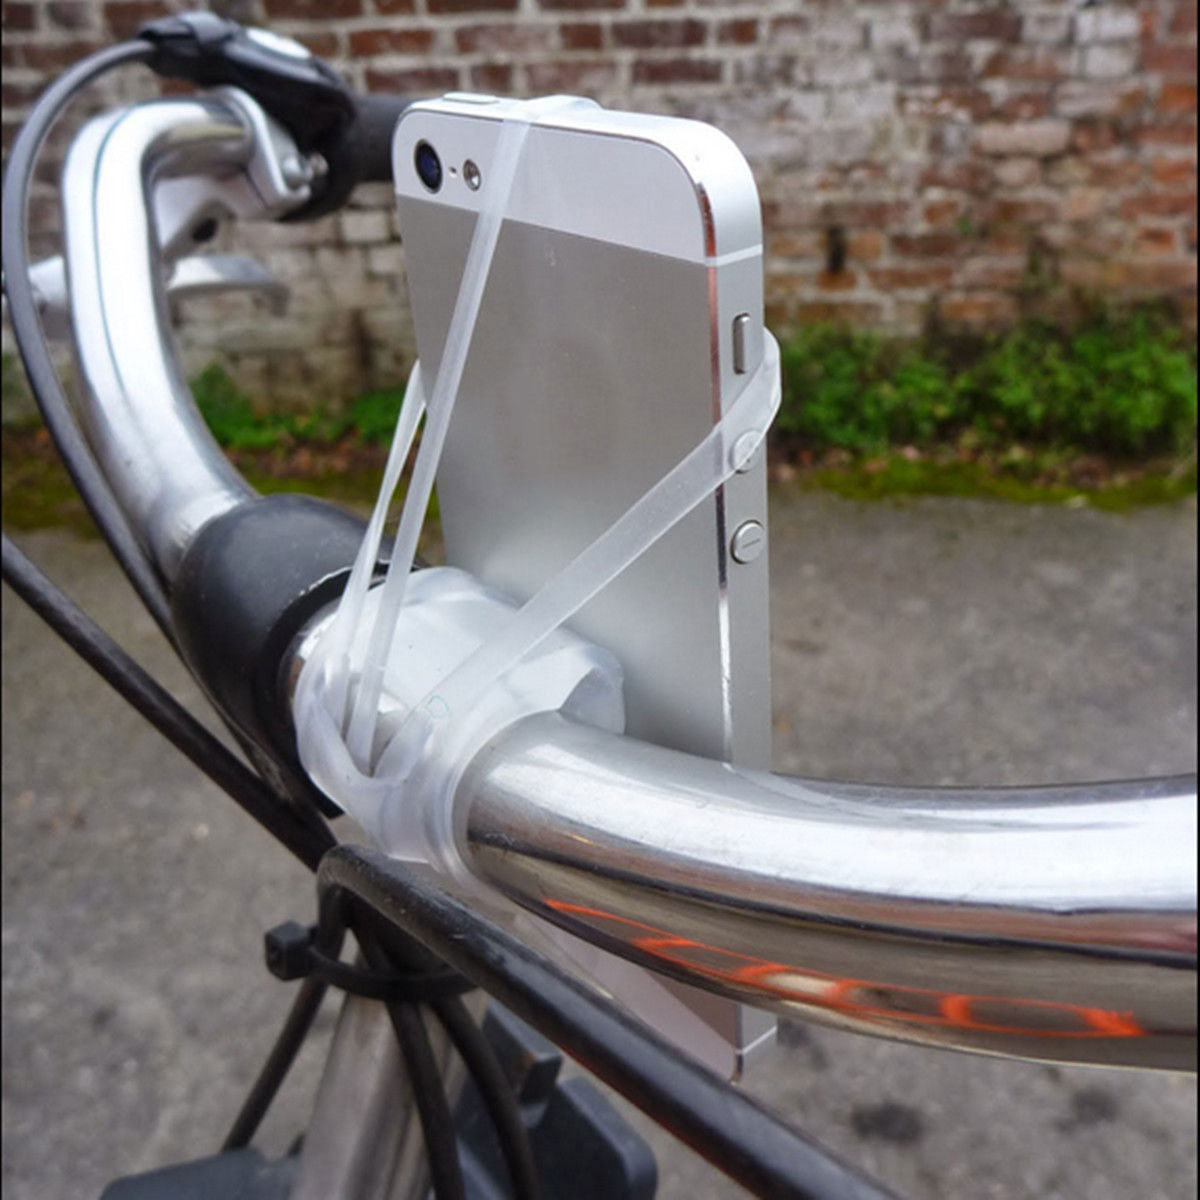 CB70-Universal-Silicone-Elastic-Strap-Bicycle-Bike-Mount-Holder-For-Cell-Phone